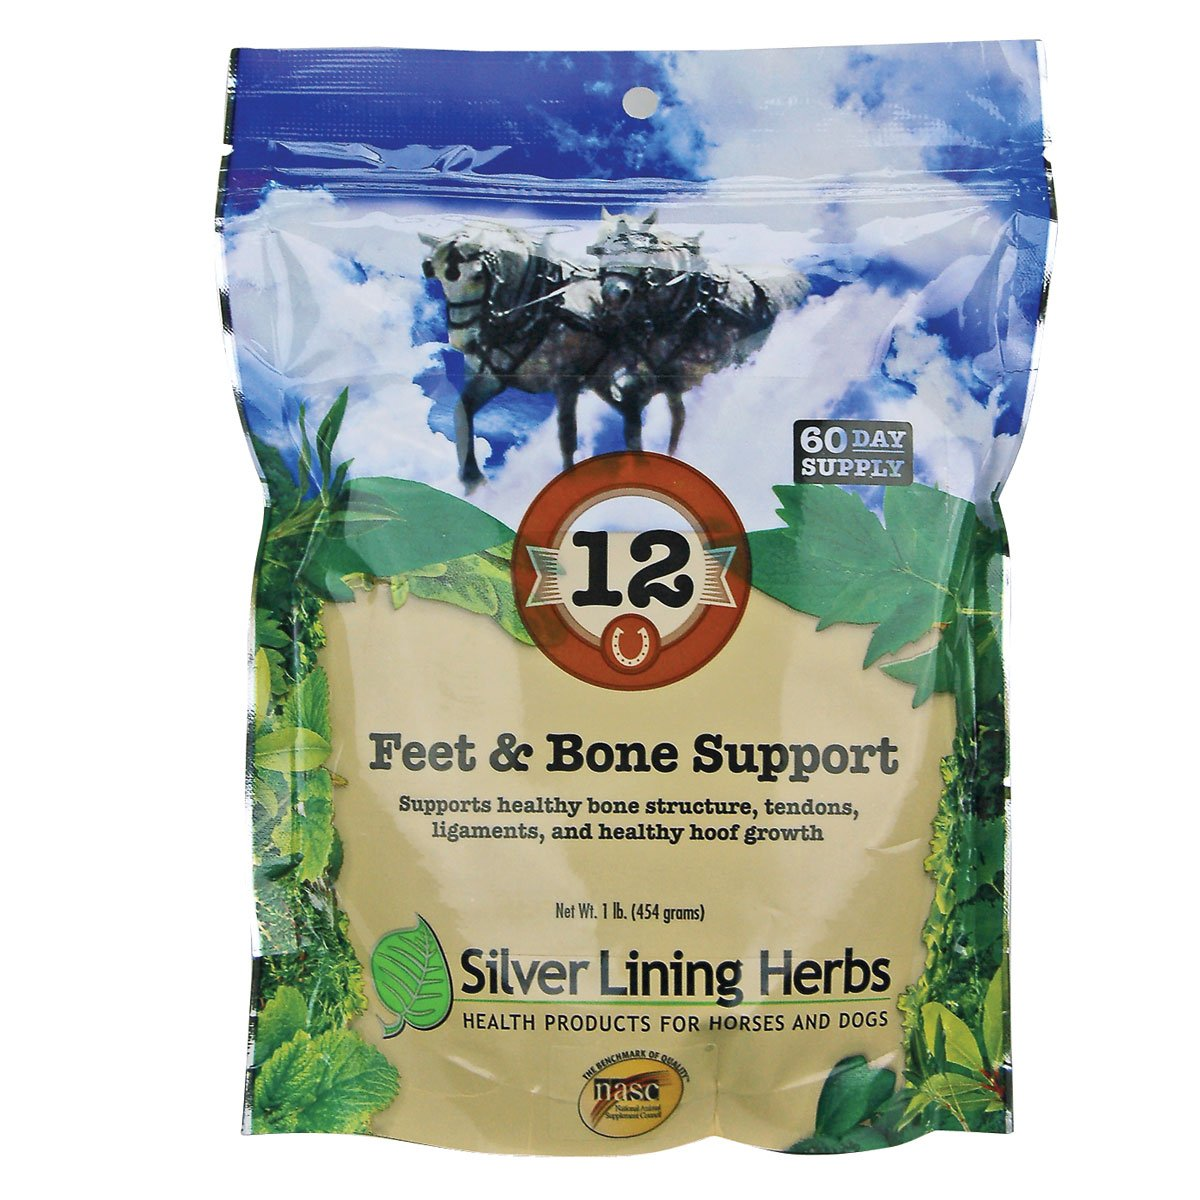 Equine Feet and Bone Support | Supports Healthy Horse Hoof Growth  |  Helps Support Healthy Bones, Tendons and Ligaments | 1 Pound Resealable Bag | Made by Silver Lining Herbs in the USA of Natural Herbs by Silver Lining Herbs